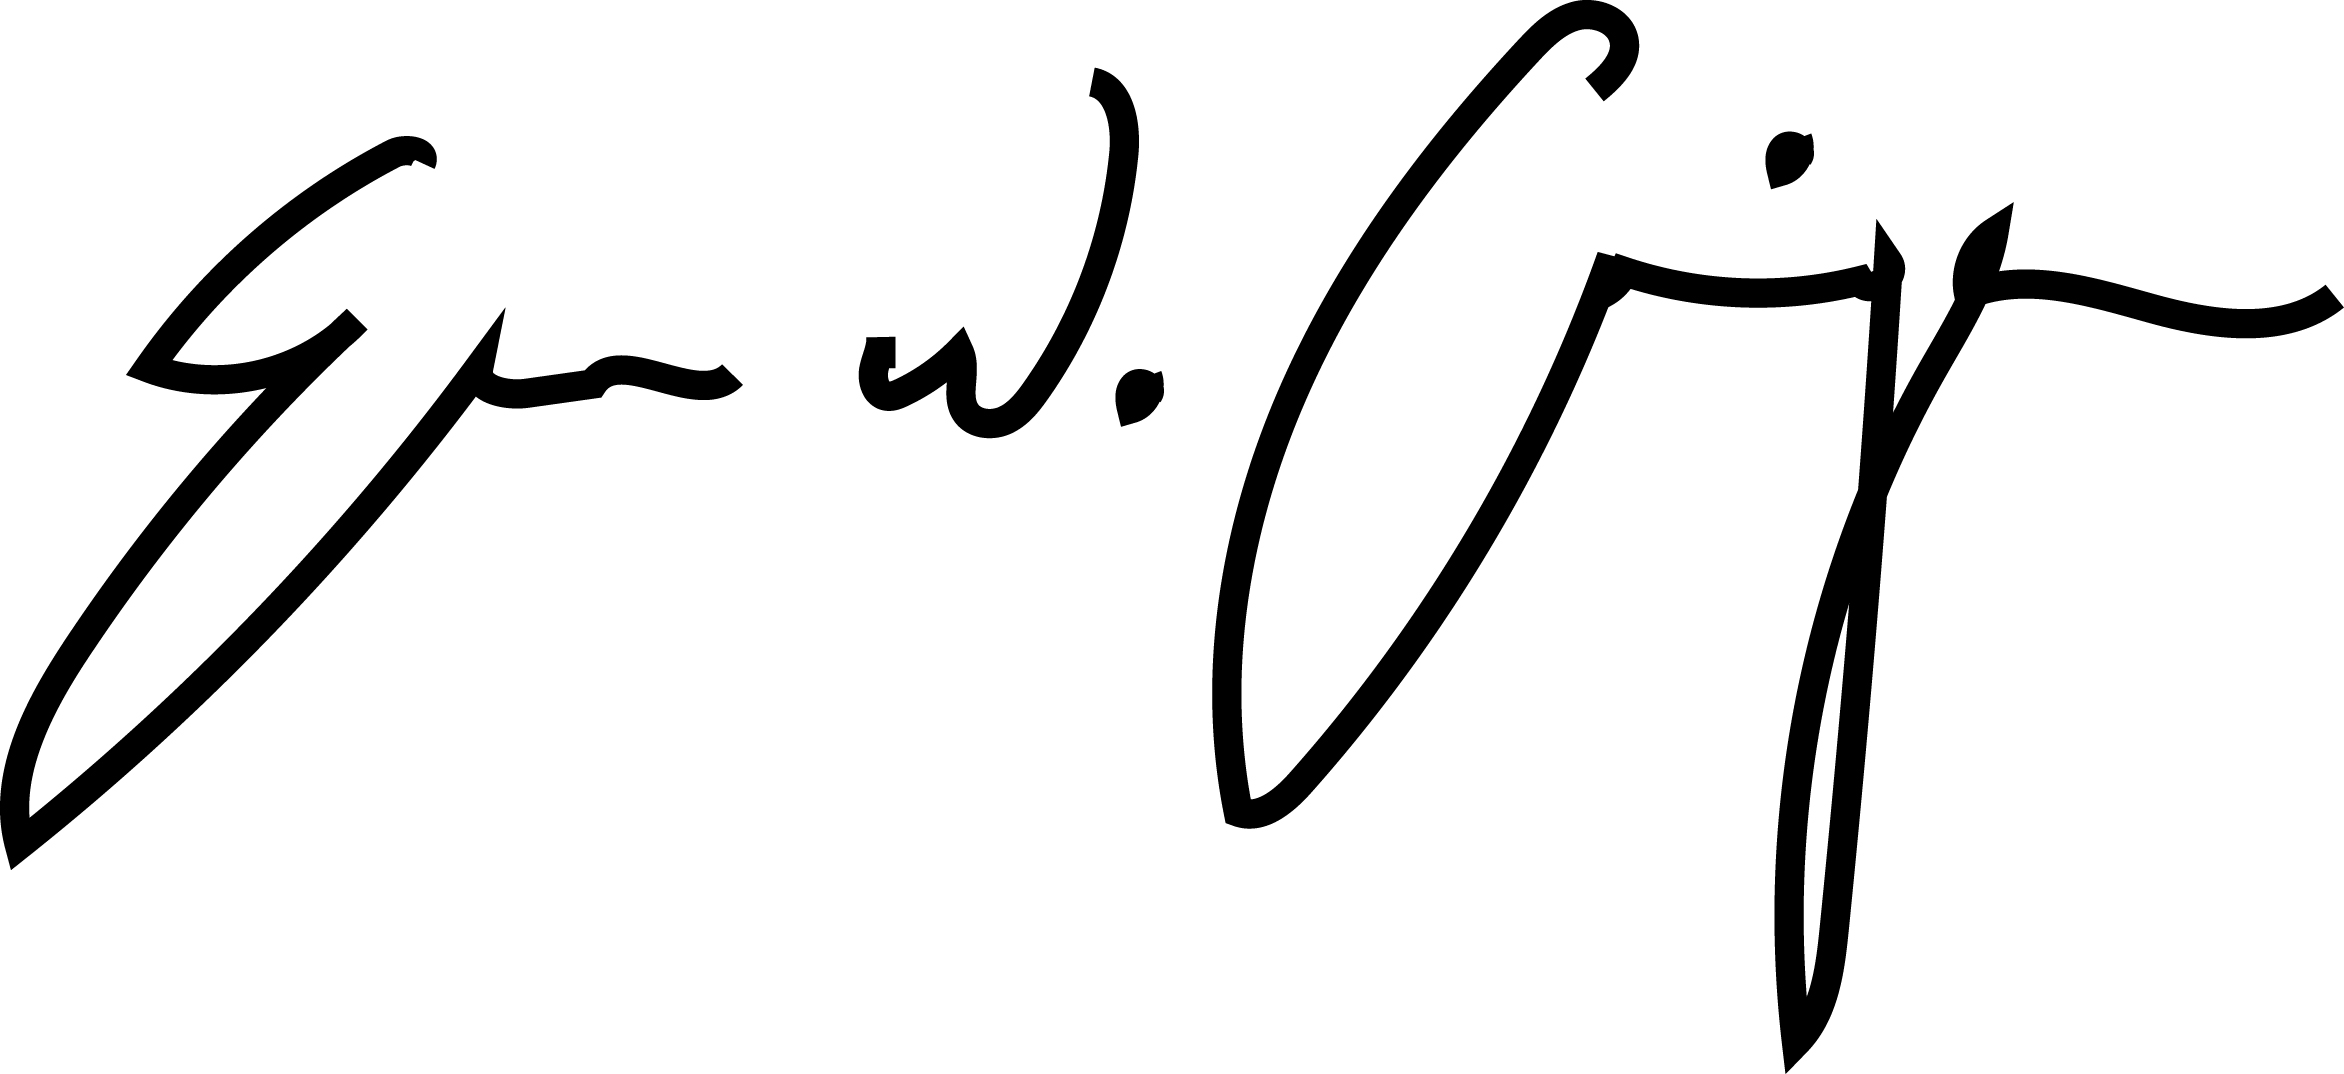 Evan Carrigan's Signature